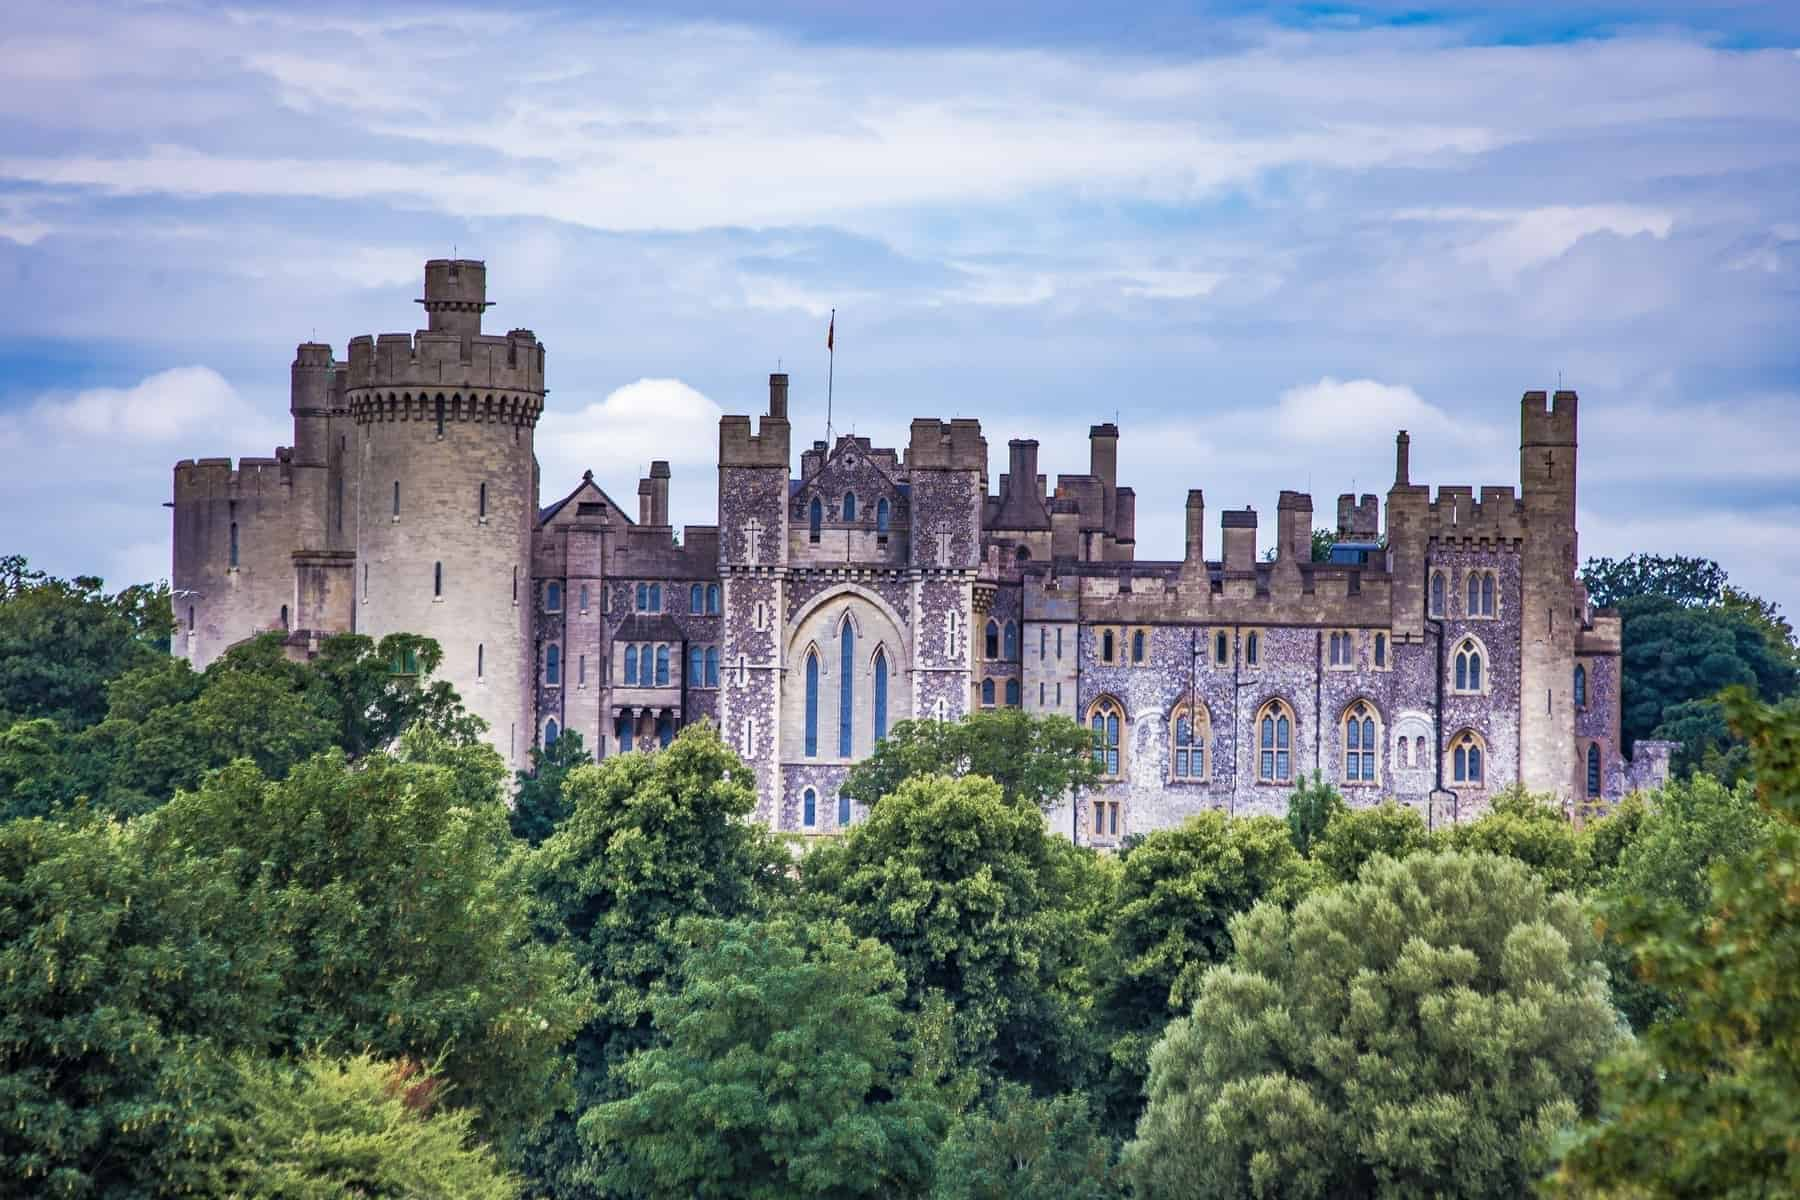 English old castle Arundel Castle River Arun West Sussex England Europe